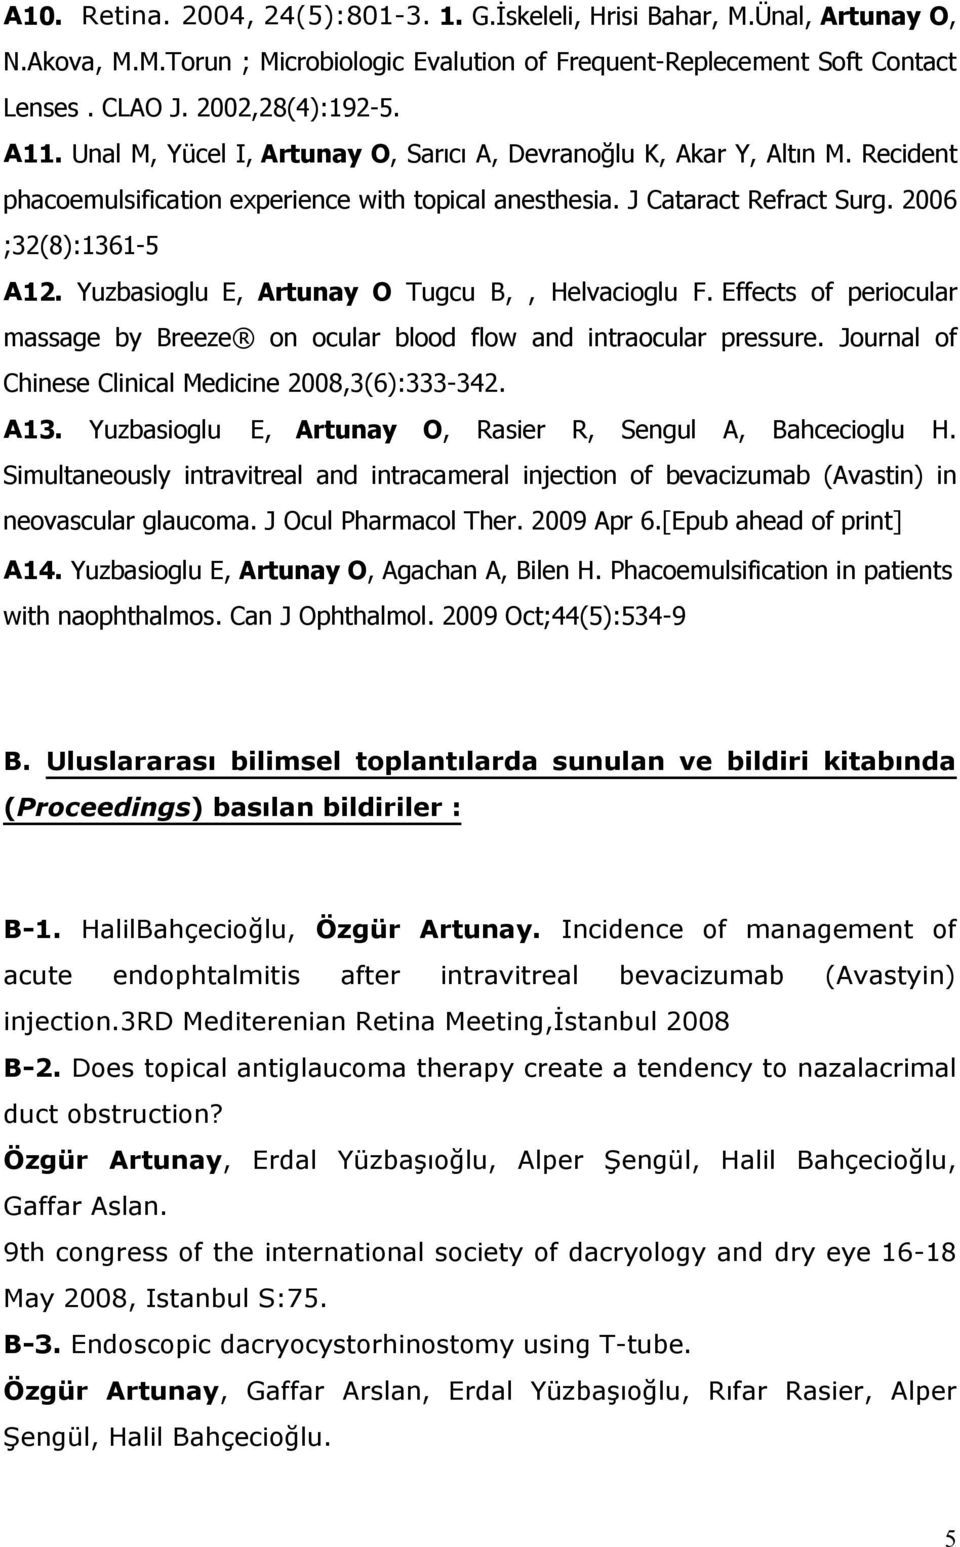 Yuzbasioglu E, Artunay O Tugcu B,, Helvacioglu F. Effects of periocular massage by Breeze on ocular blood flow and intraocular pressure. Journal of Chinese Clinical Medicine 2008,3(6):333-342. A13.